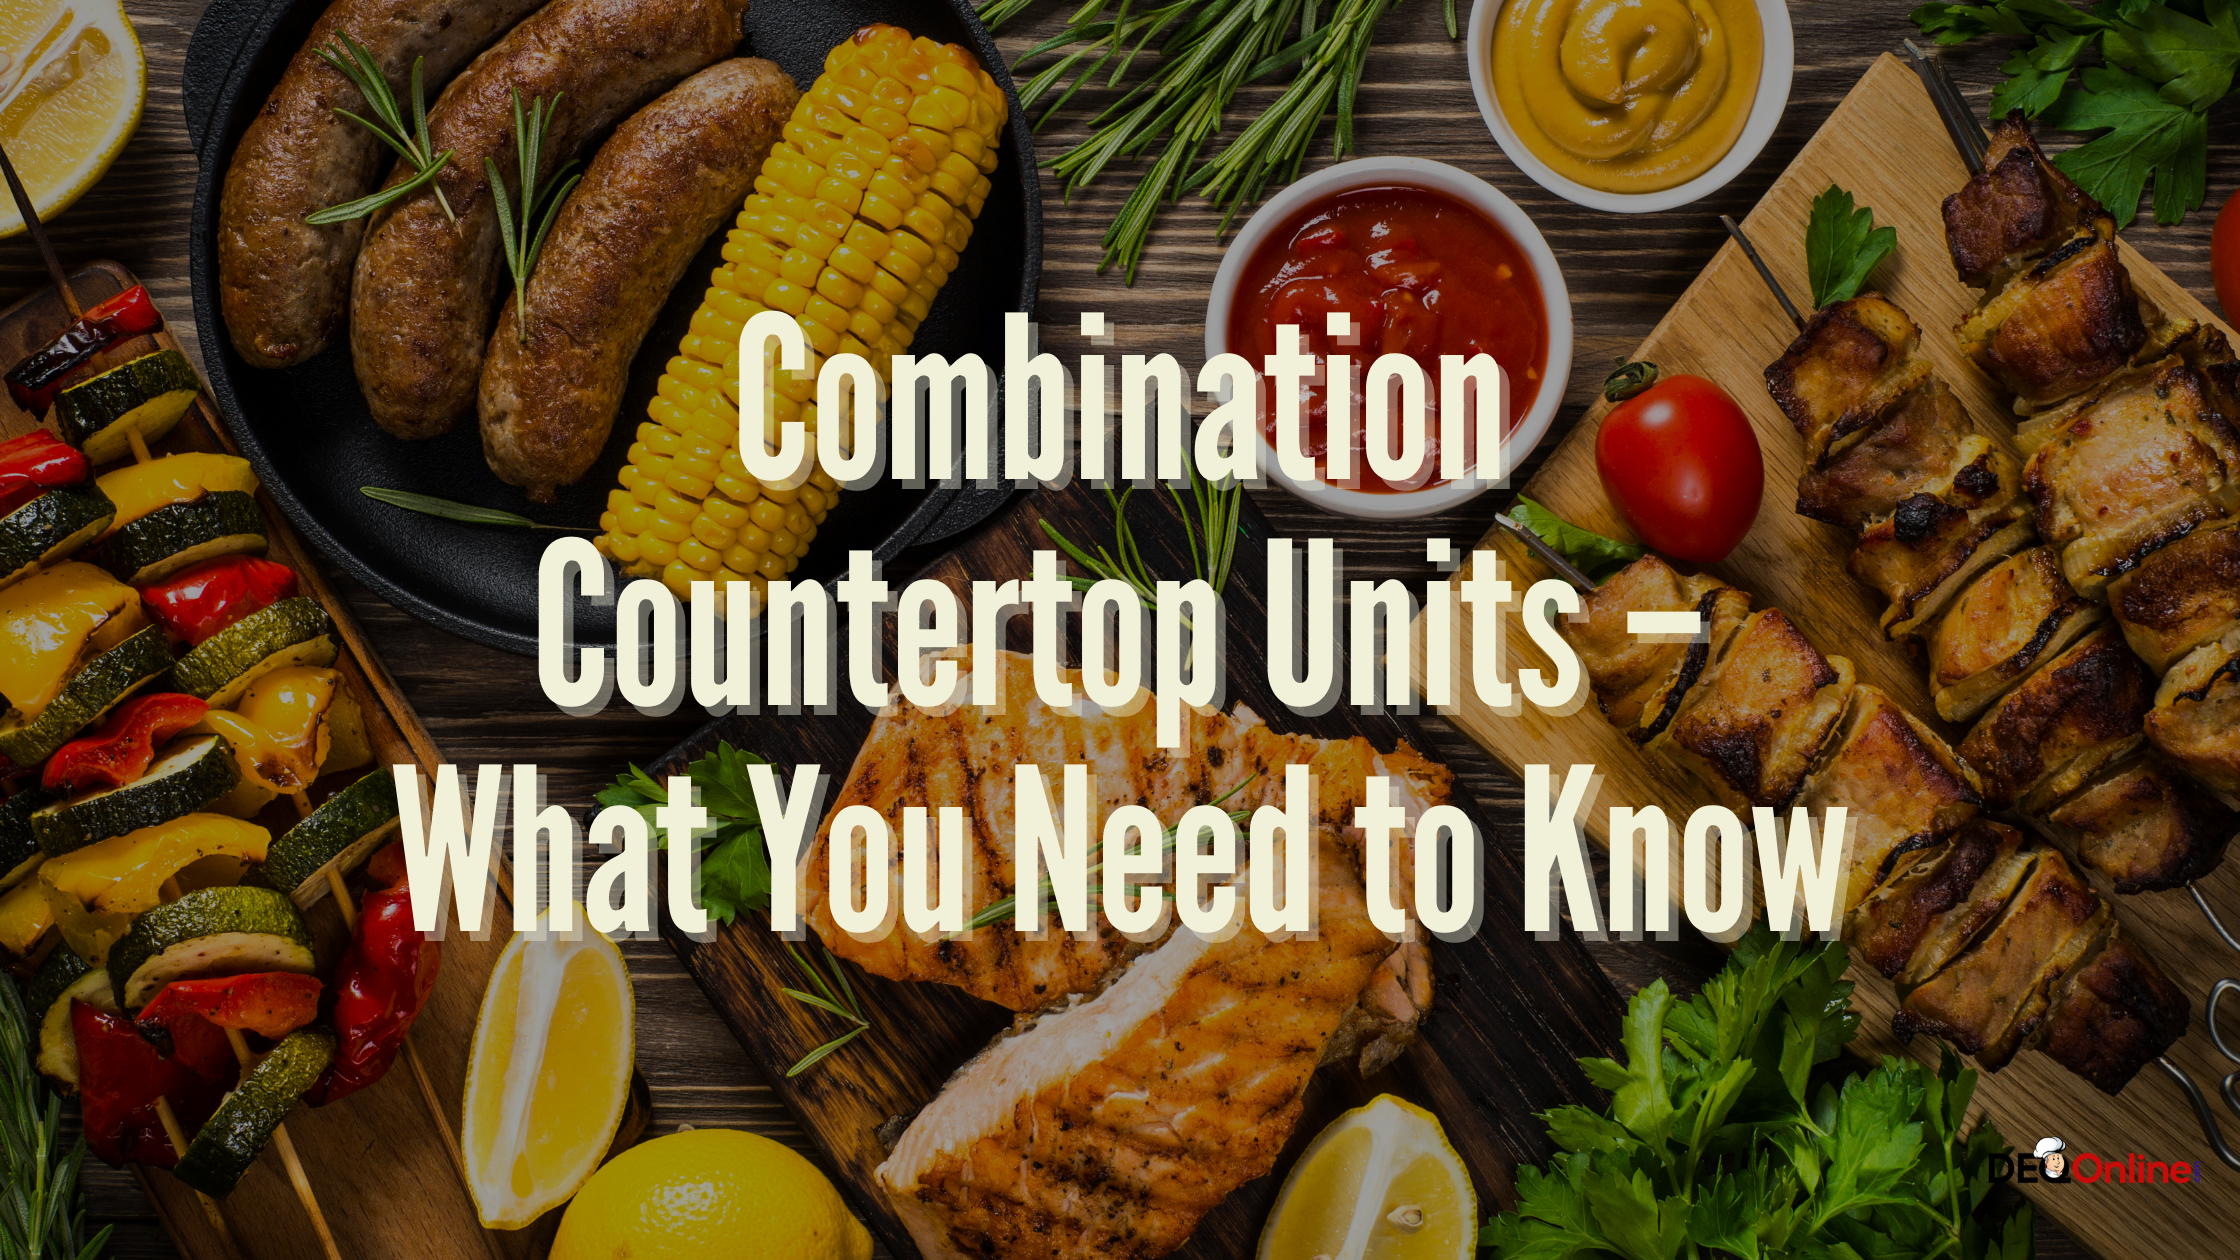 Combination Countertop Units – What You Need to Know